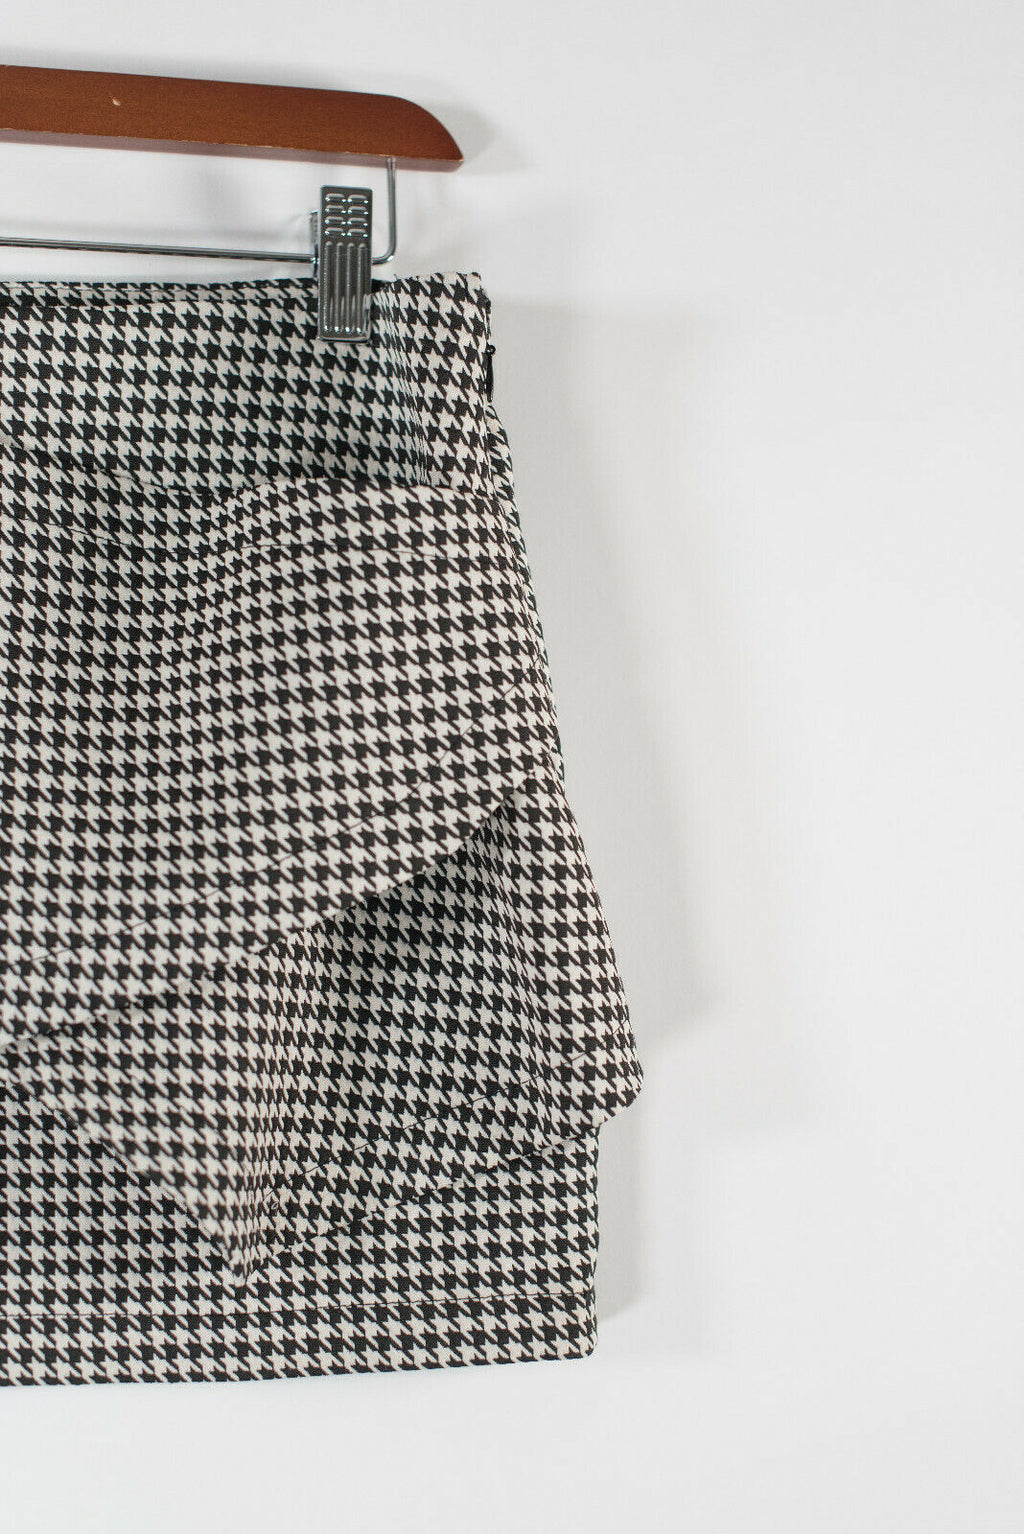 Zara Medium Black White Houndstooth Skort